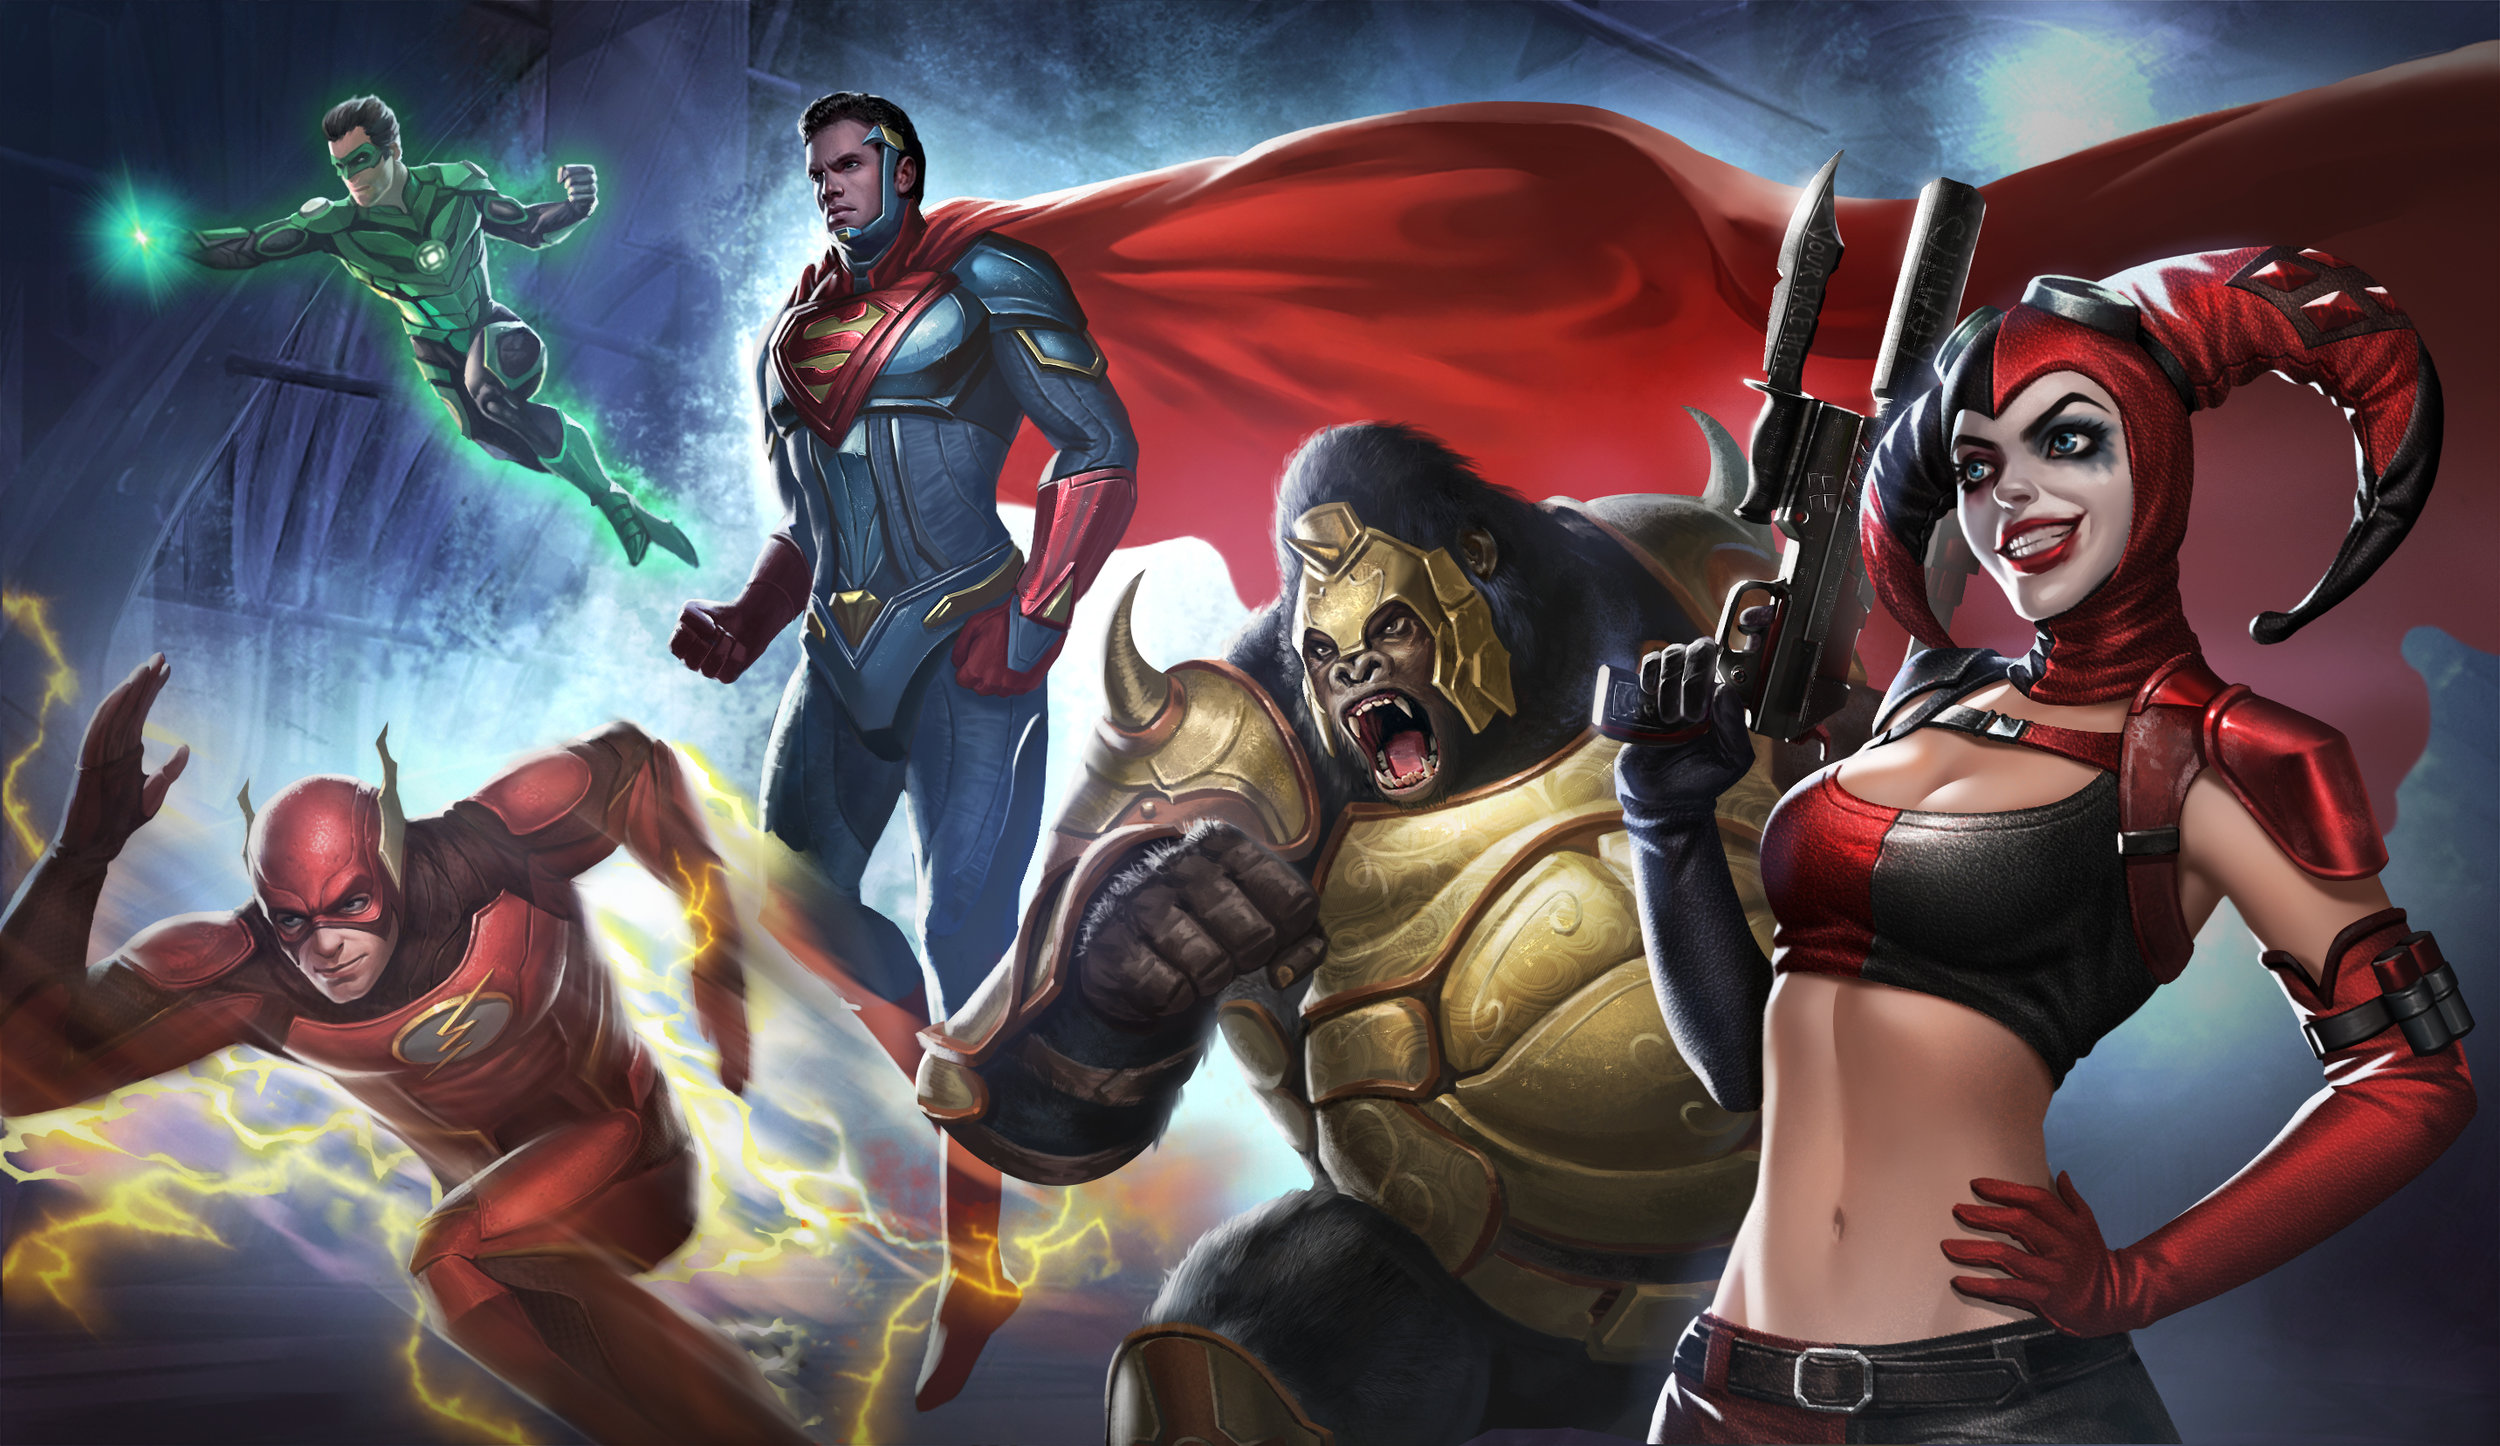 CAH for NetherRealm Studios, Injustice 2